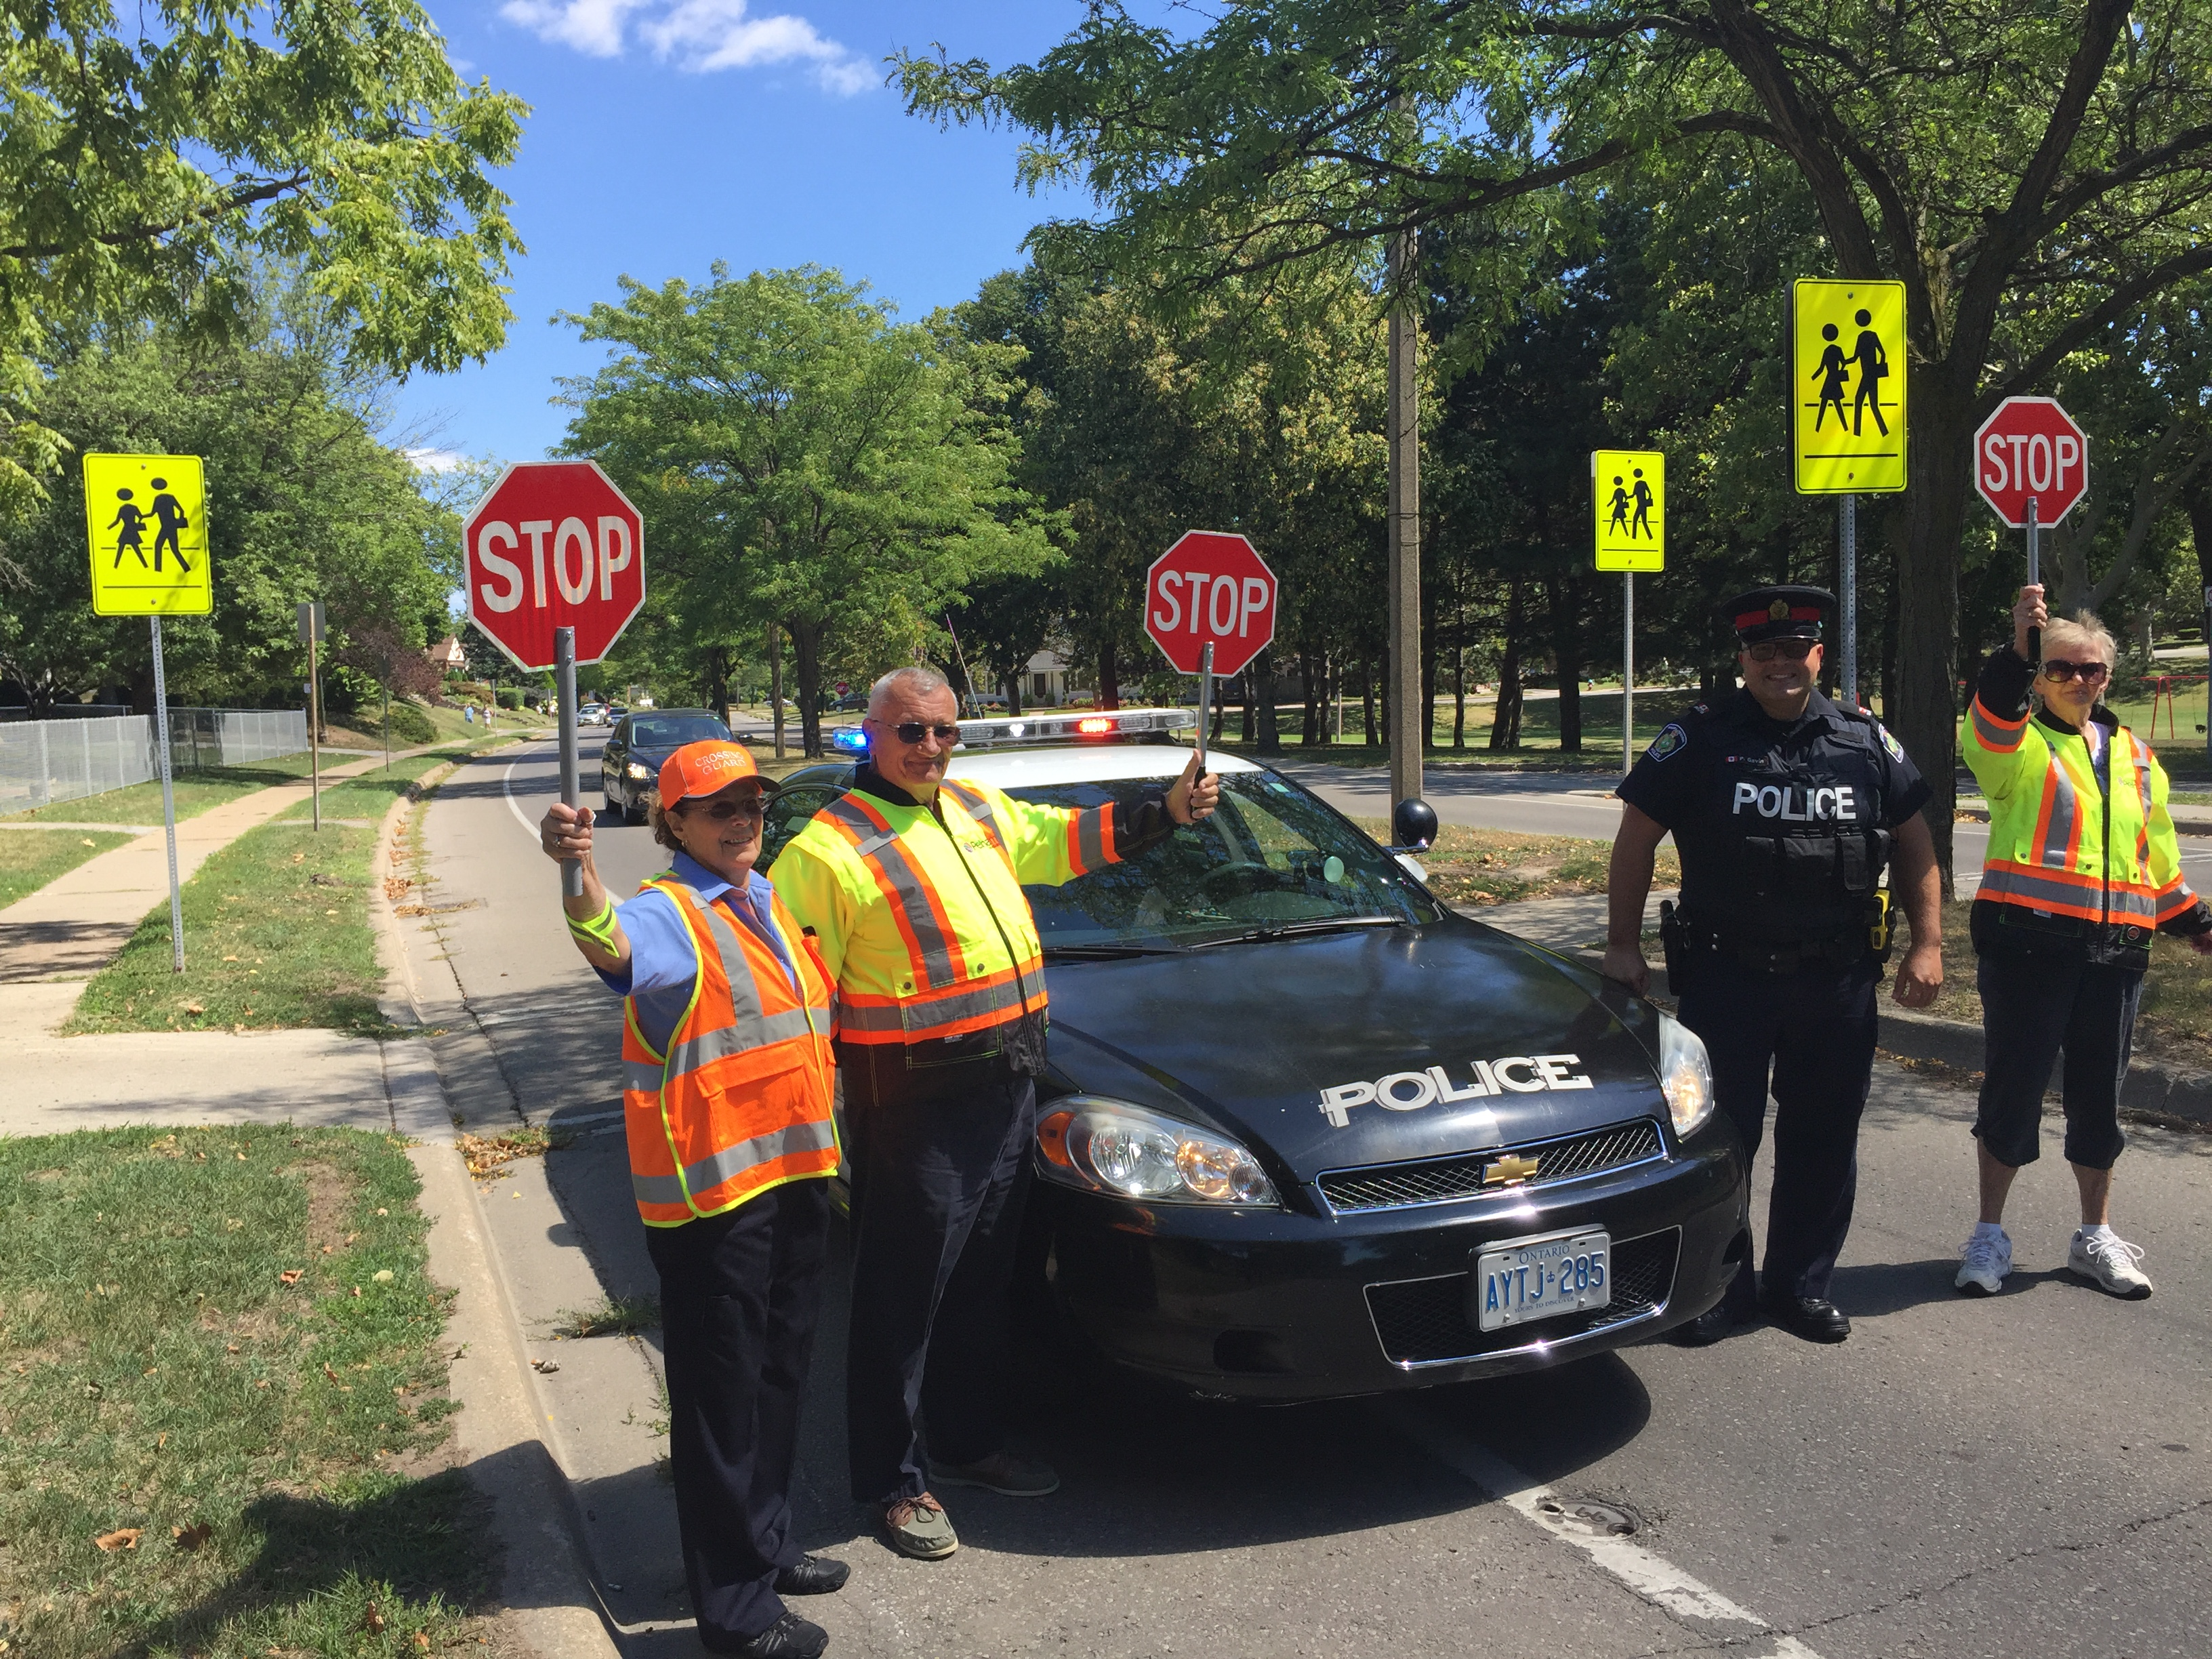 Officer and crossing guards working together